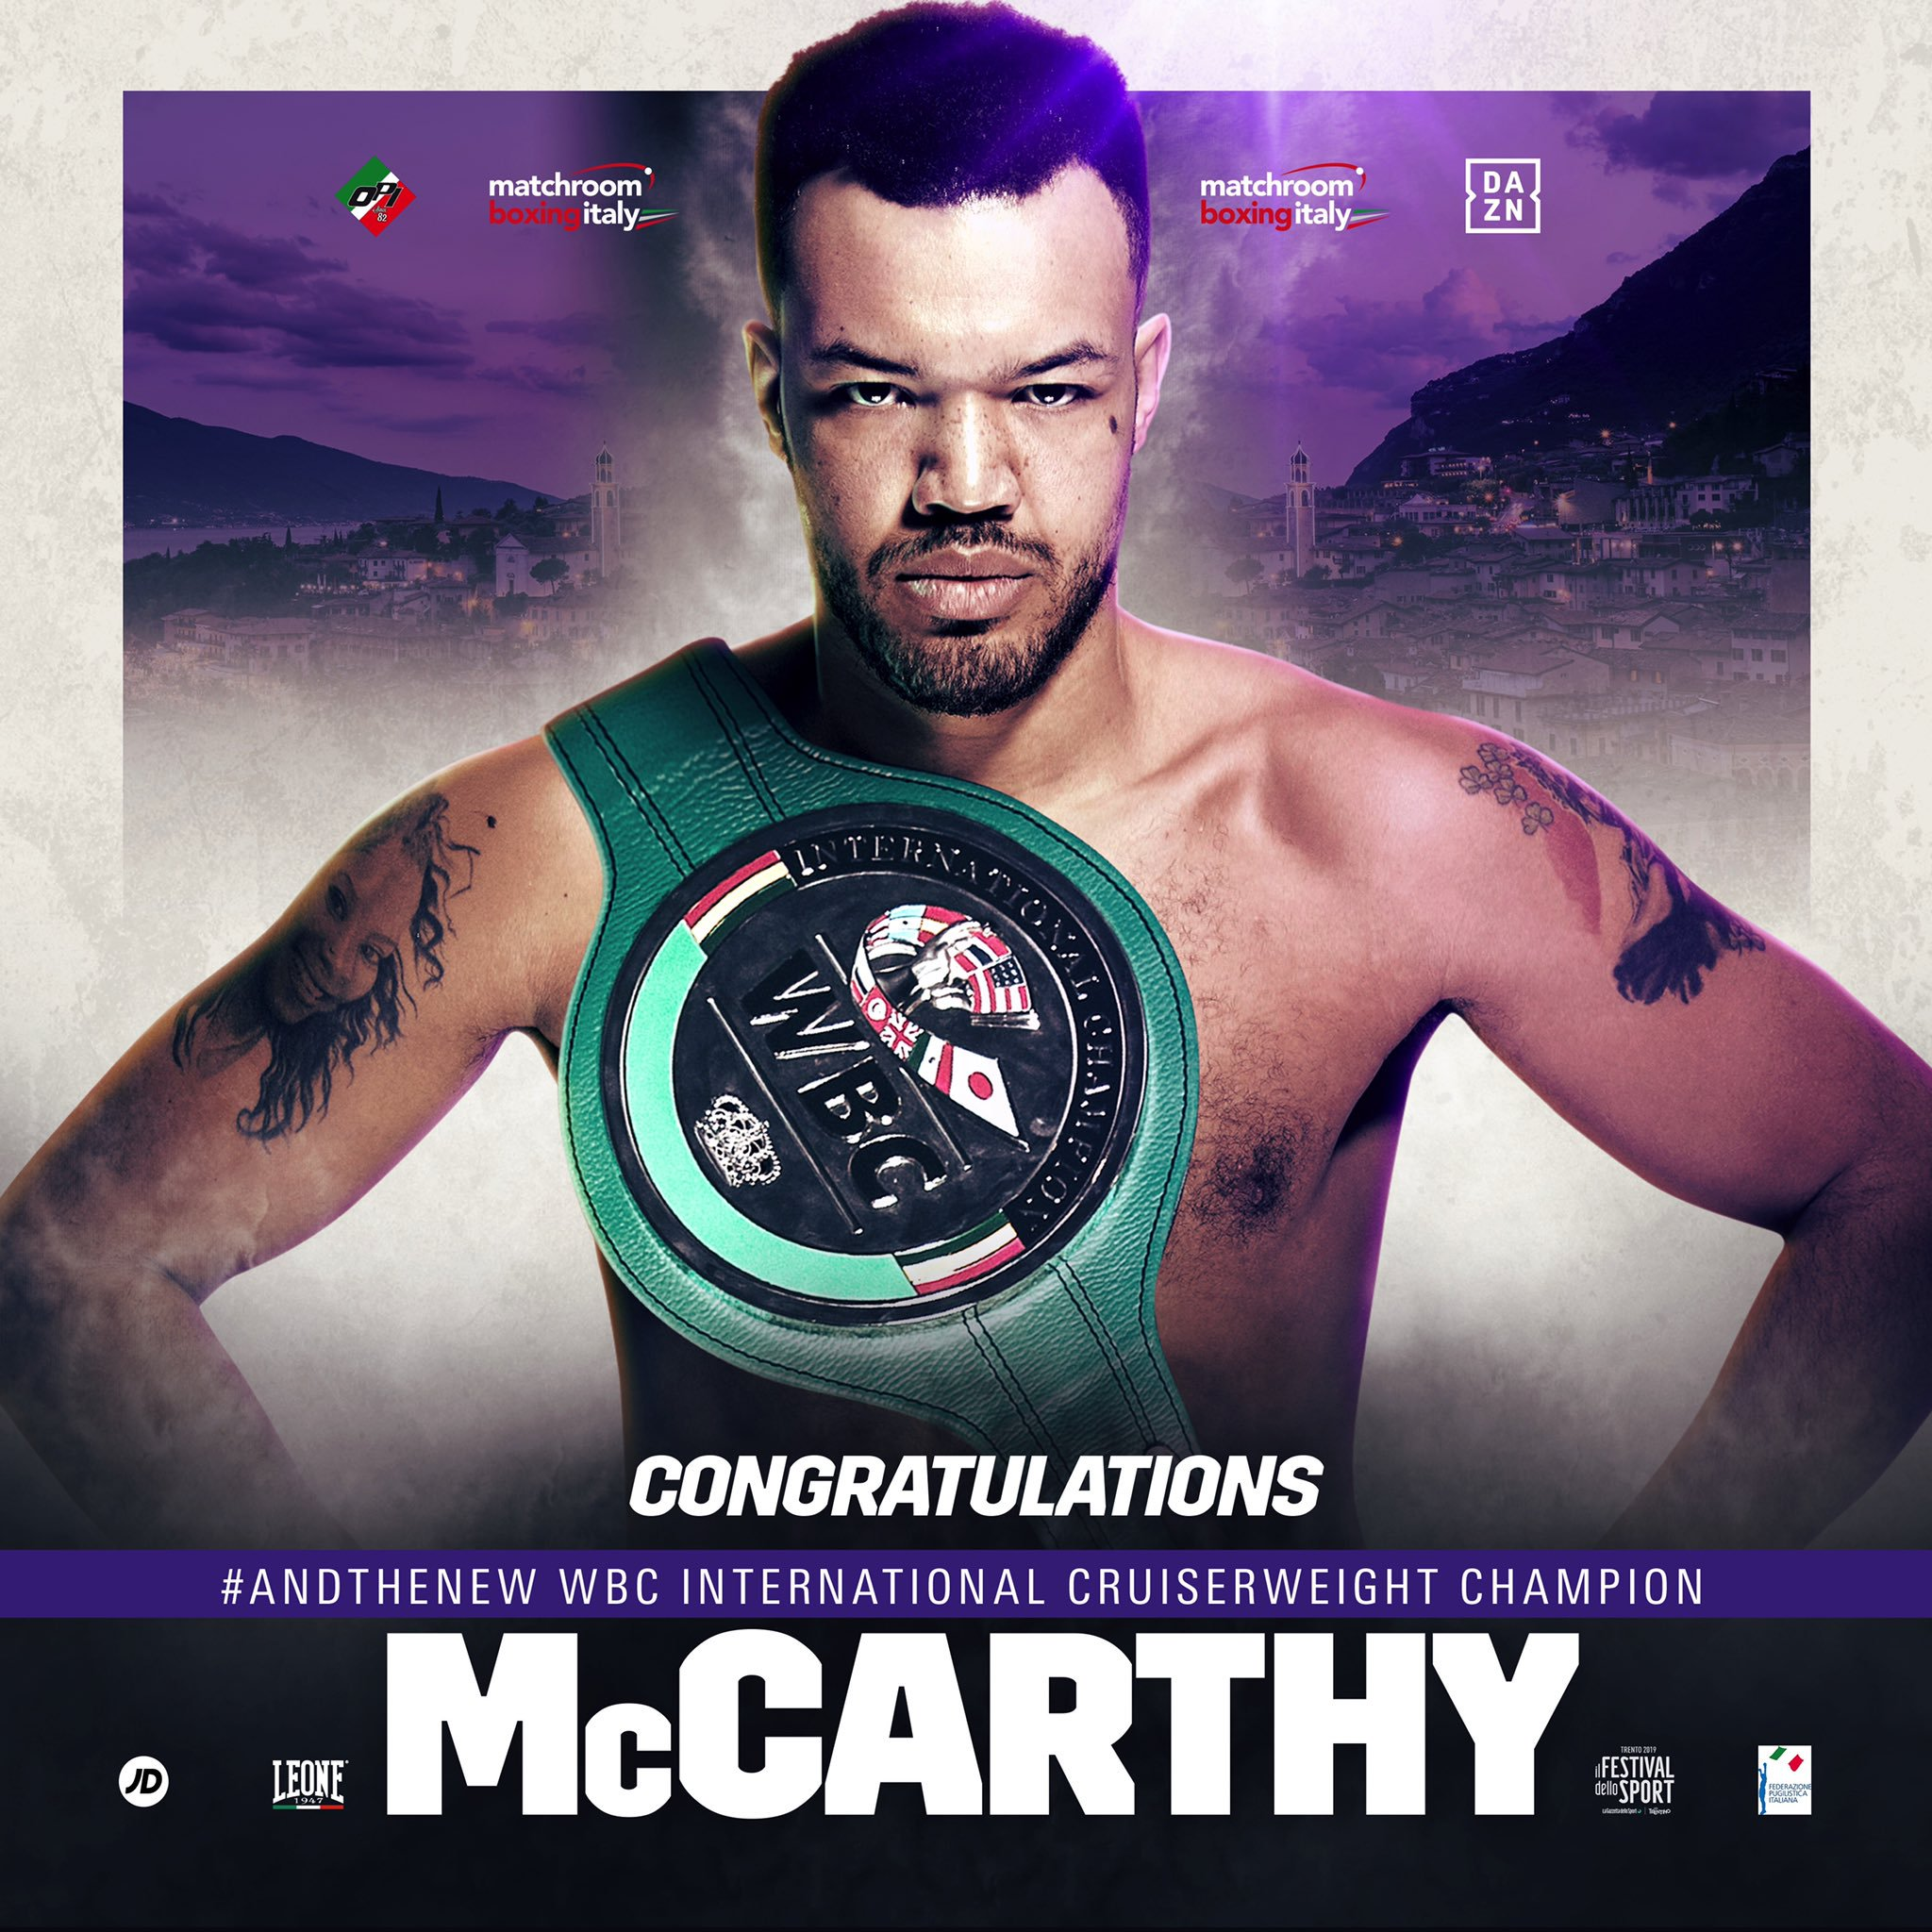 Tommy McCarthy is back in contention at domestic level Credit: Matchroom Boxing